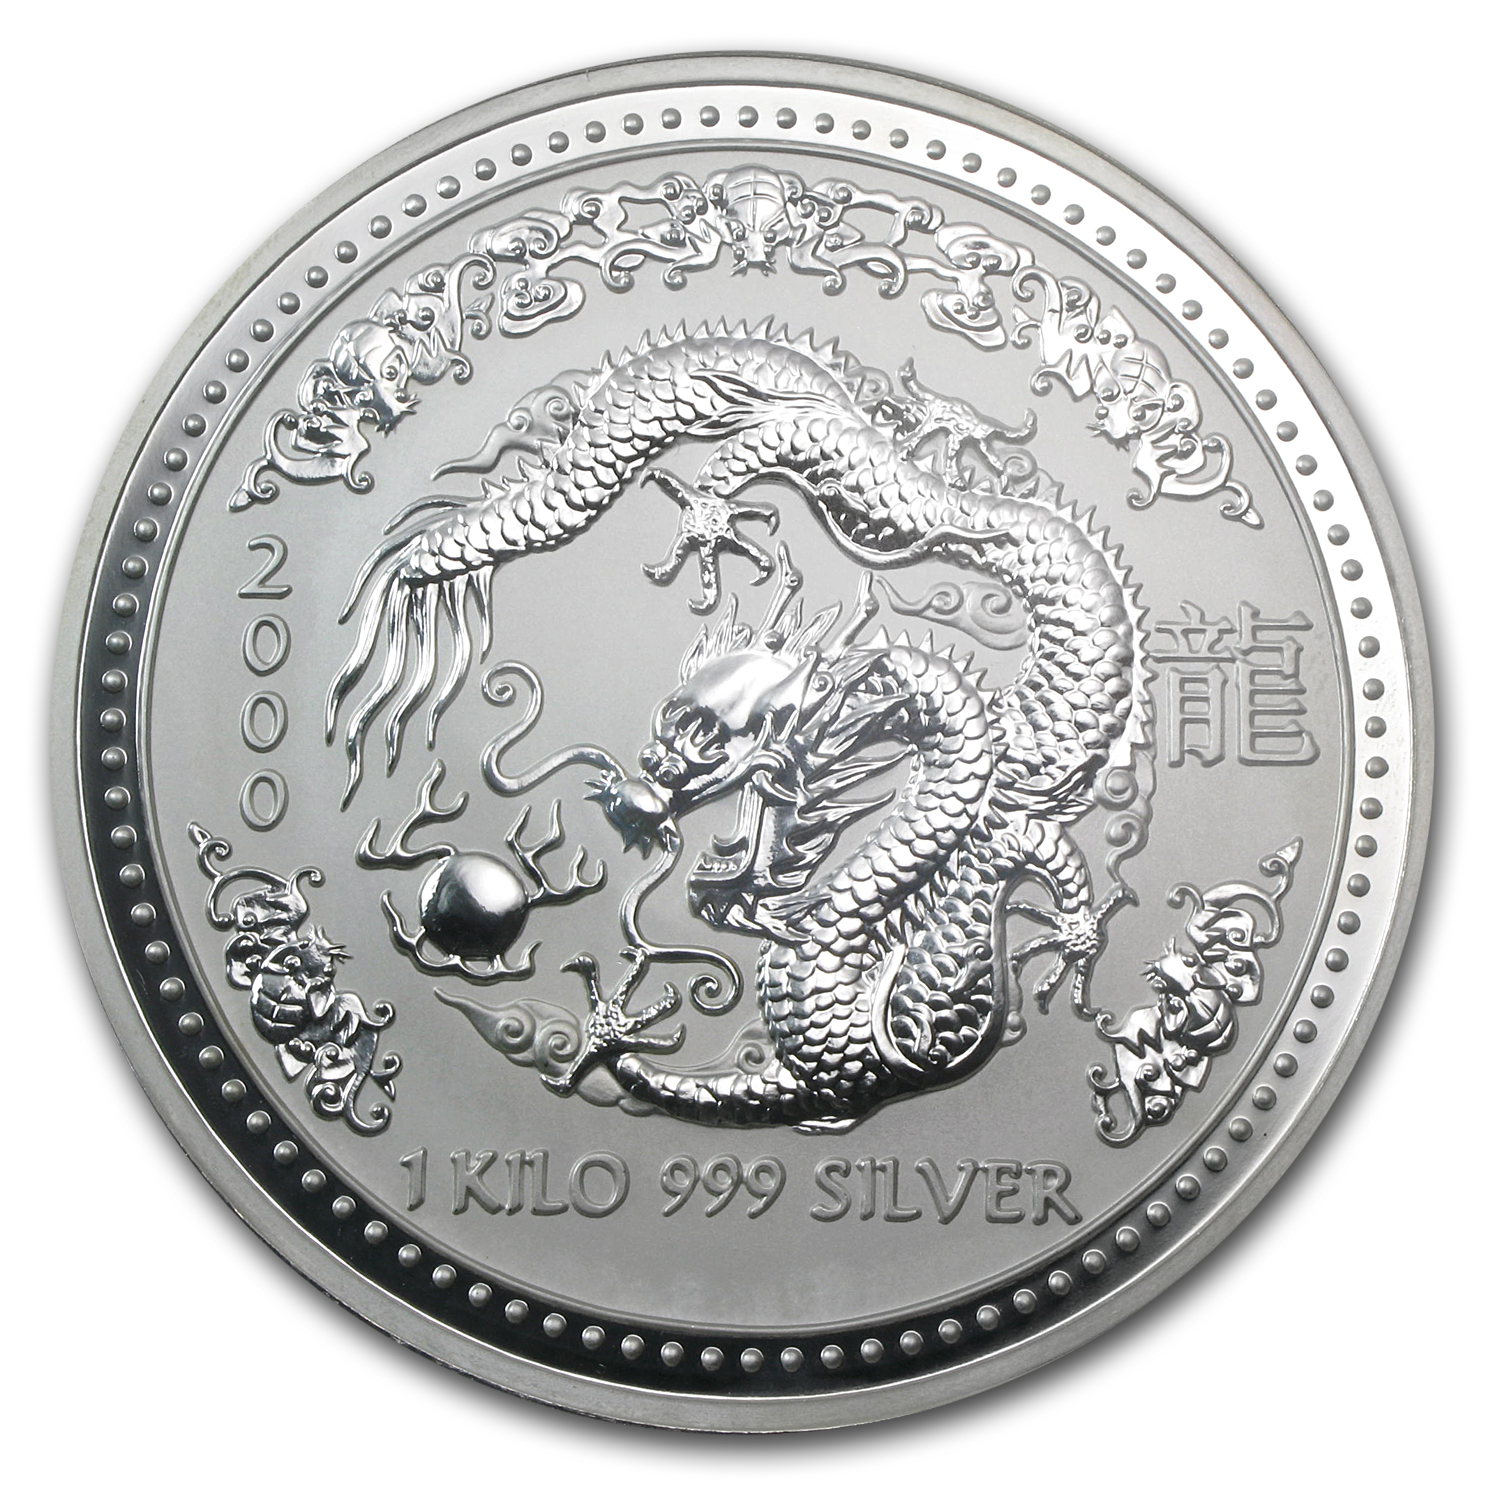 2000 1 Kilo Silver Lunar Year of the Dragon (Series I) MS-67 NGC